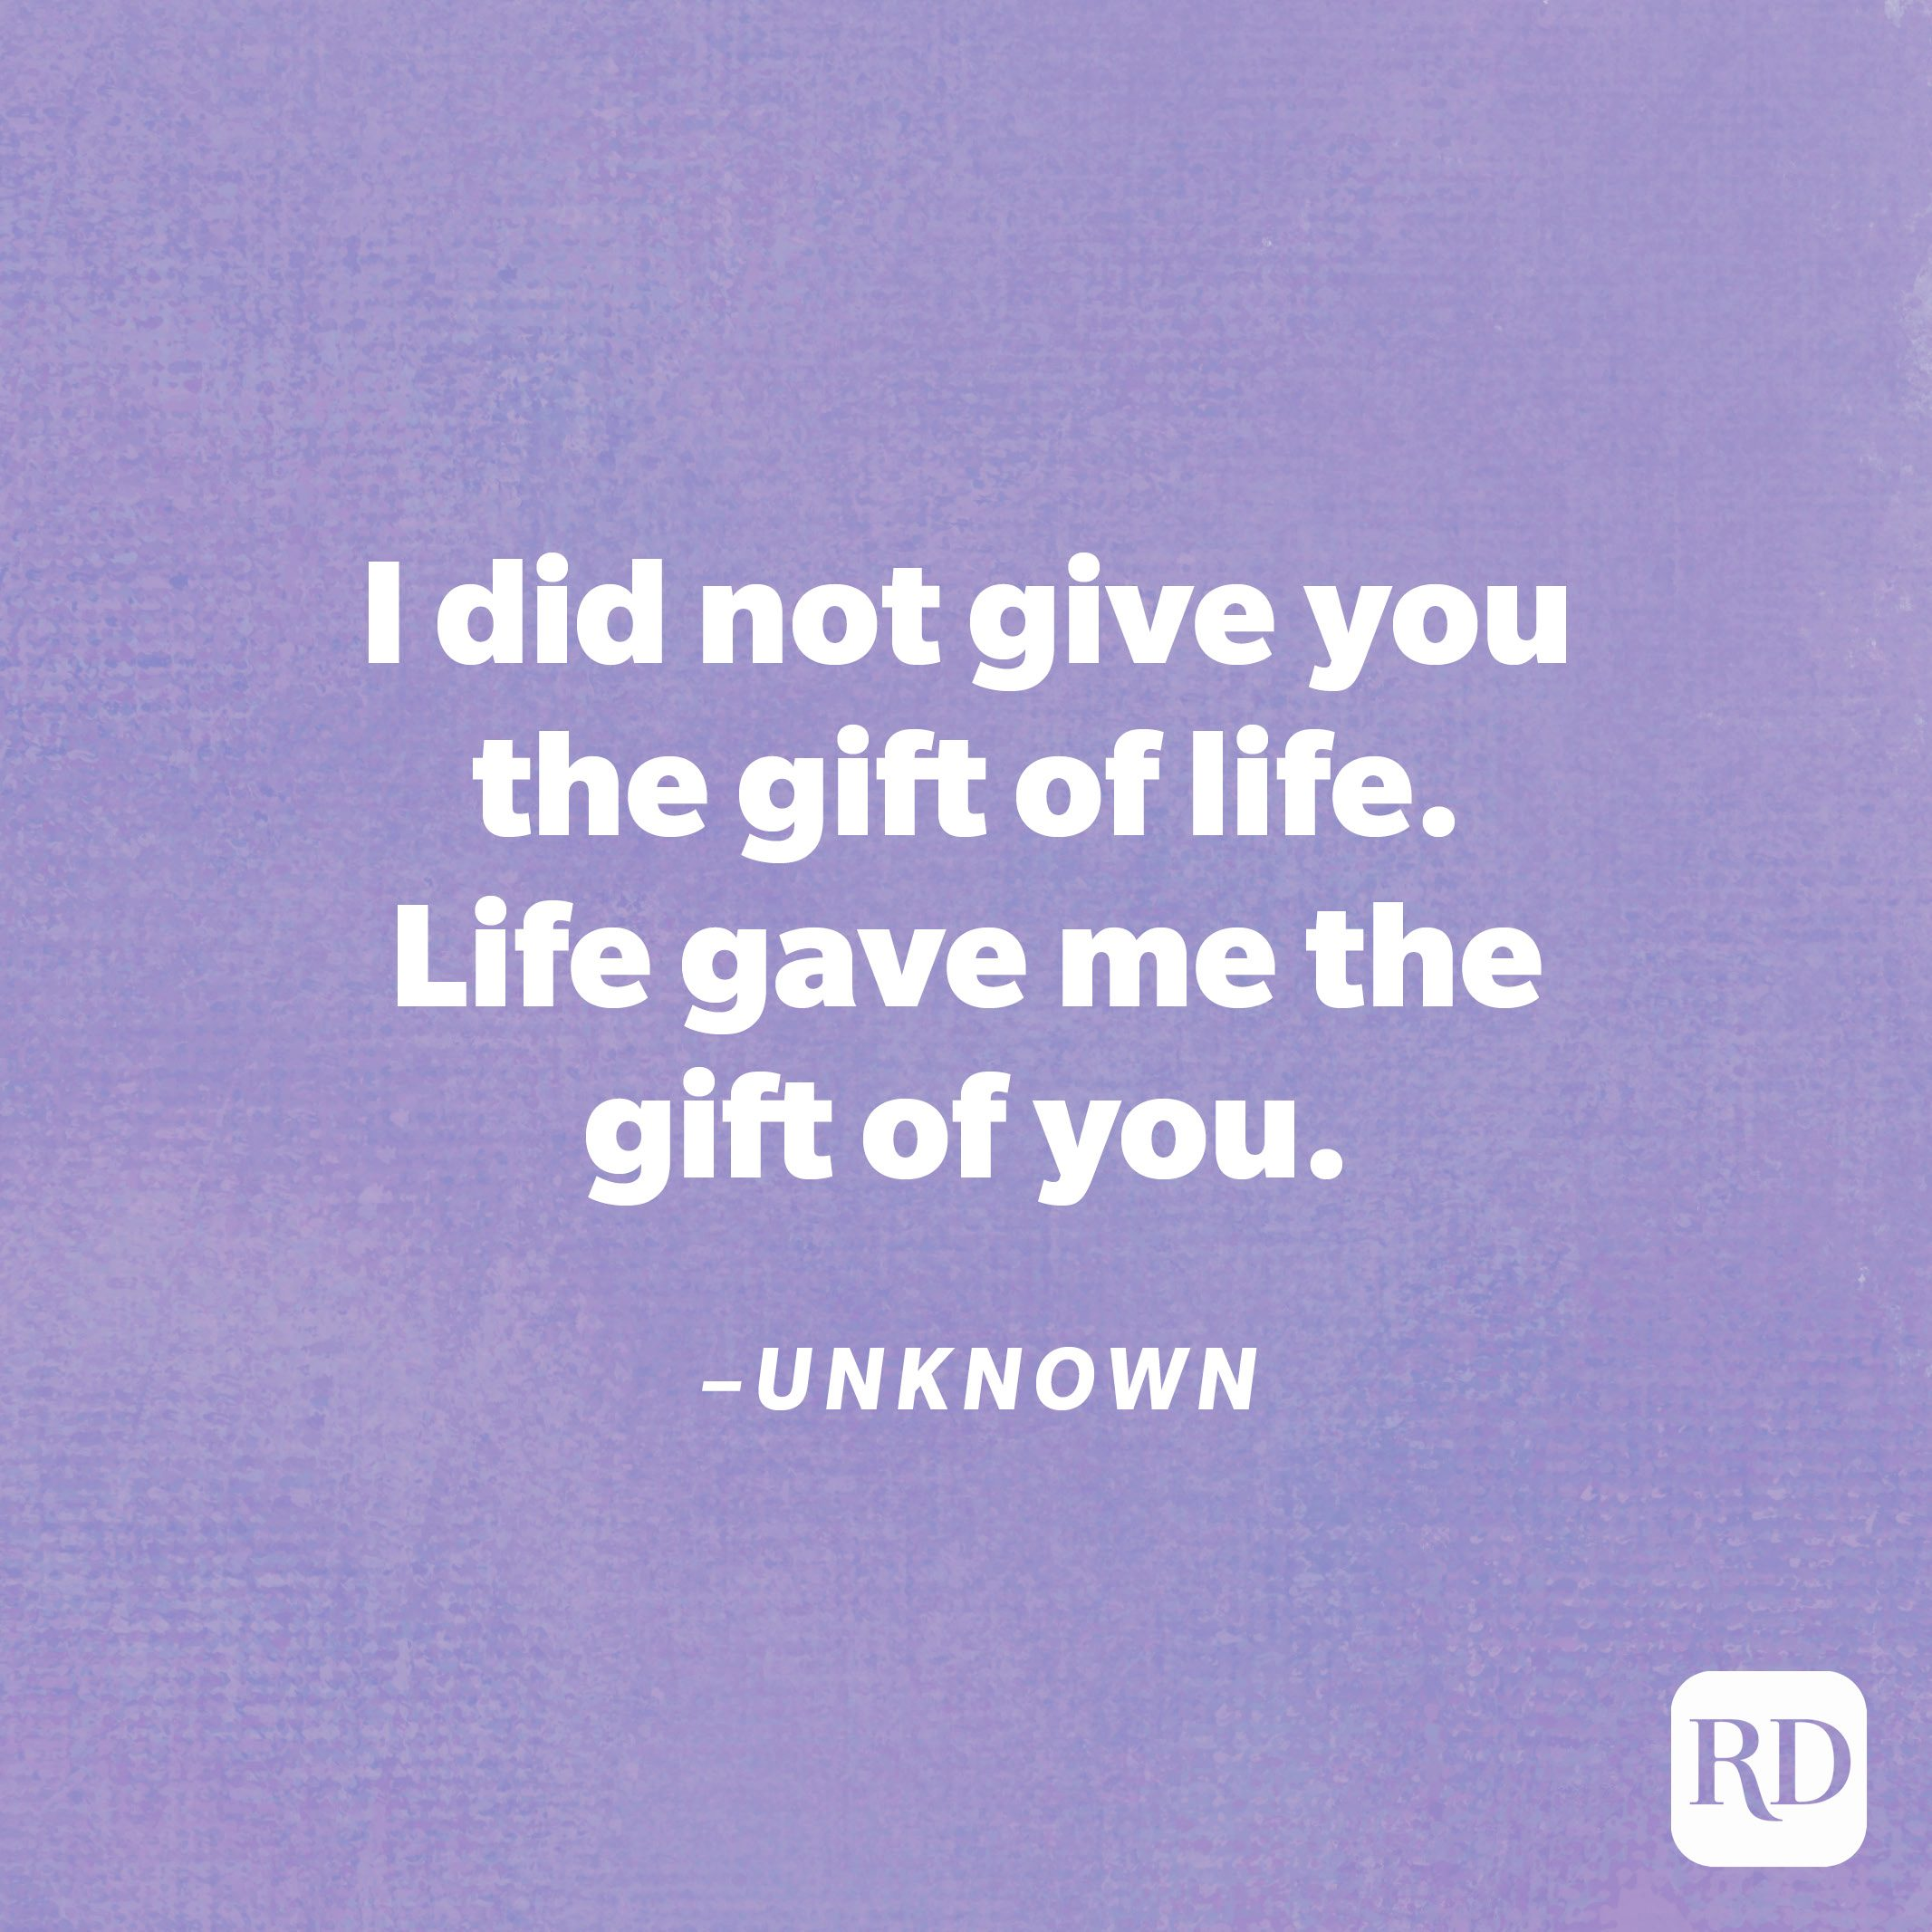 """""""I did not give you the gift of life. Life gave me the gift of you.""""—Unknown"""